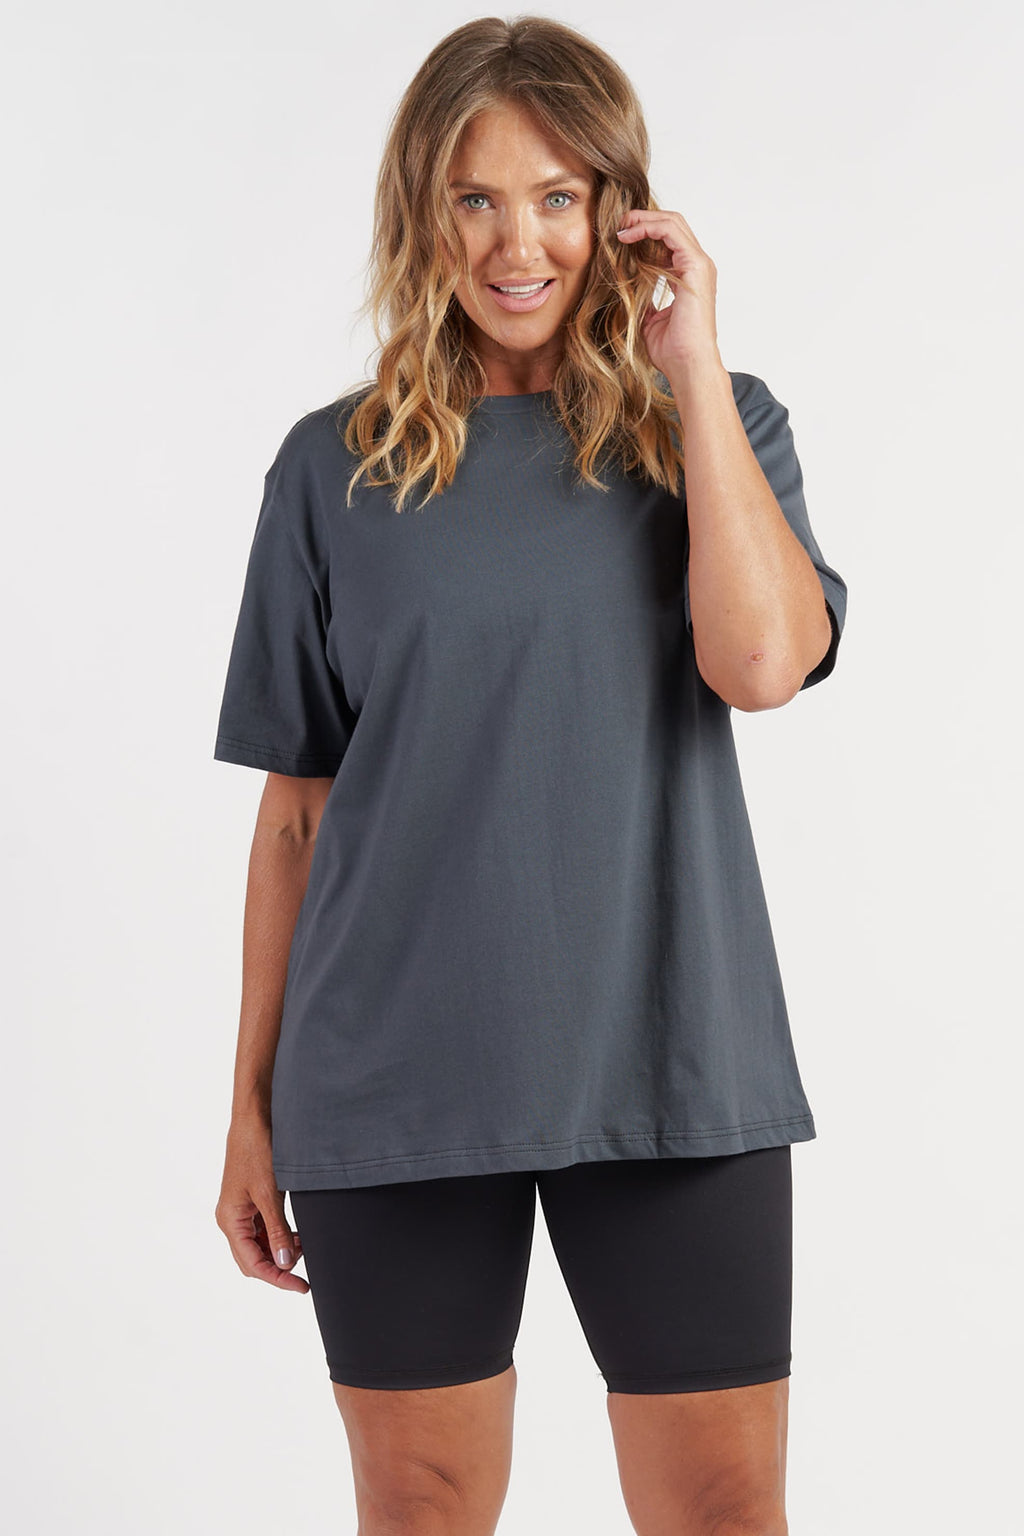 activewear-oversized-tee-charcoal-large-front